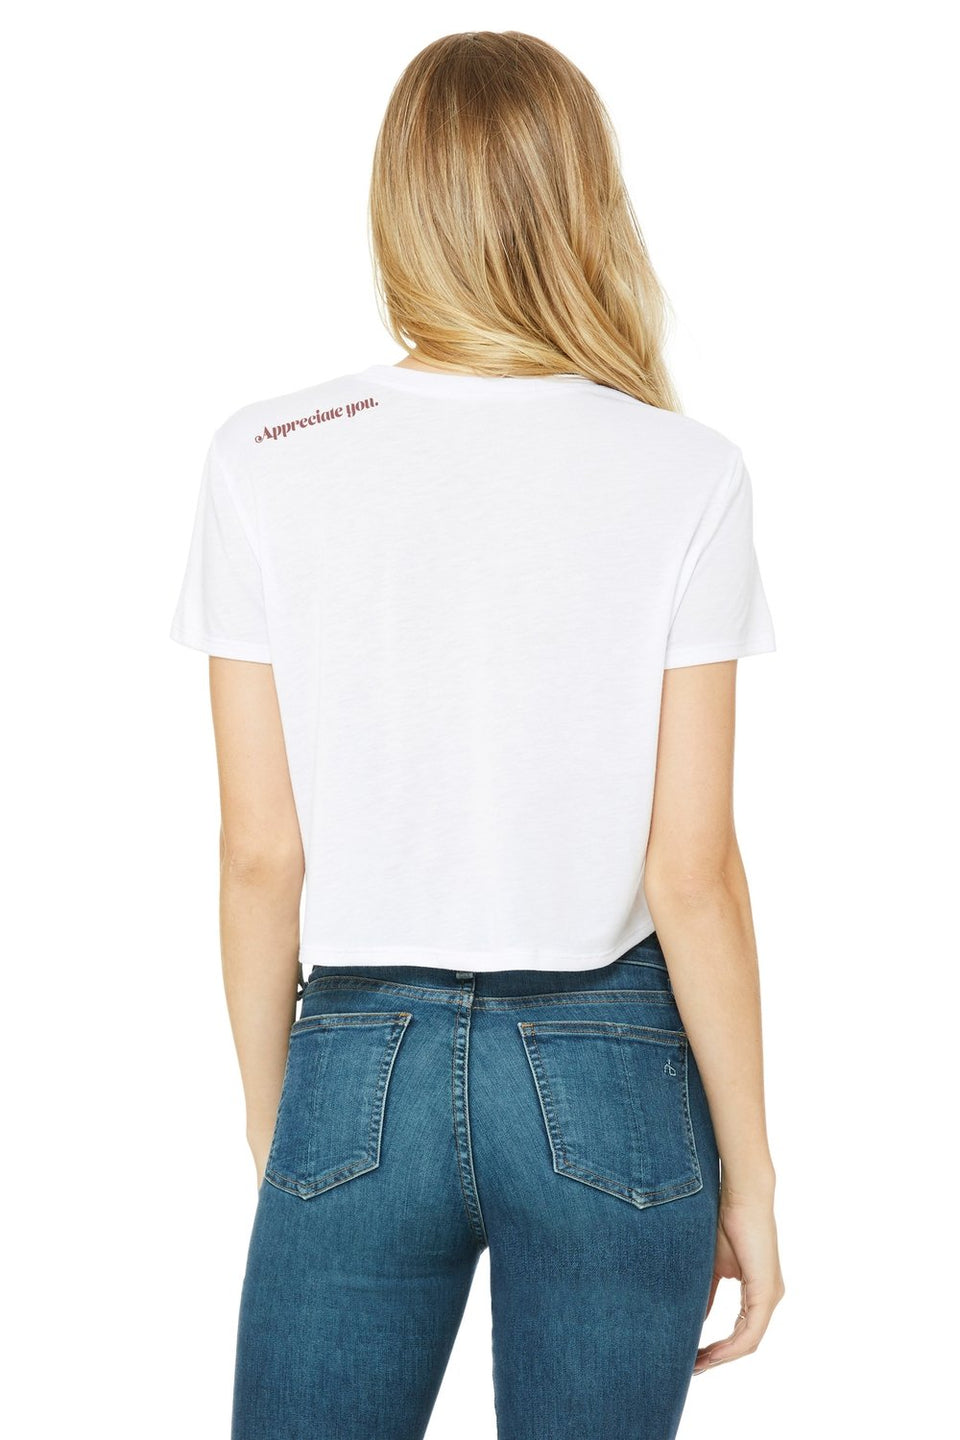 "MR E x Crystal Crop Top Tee in ""White Rice"" - MR EATWELL"